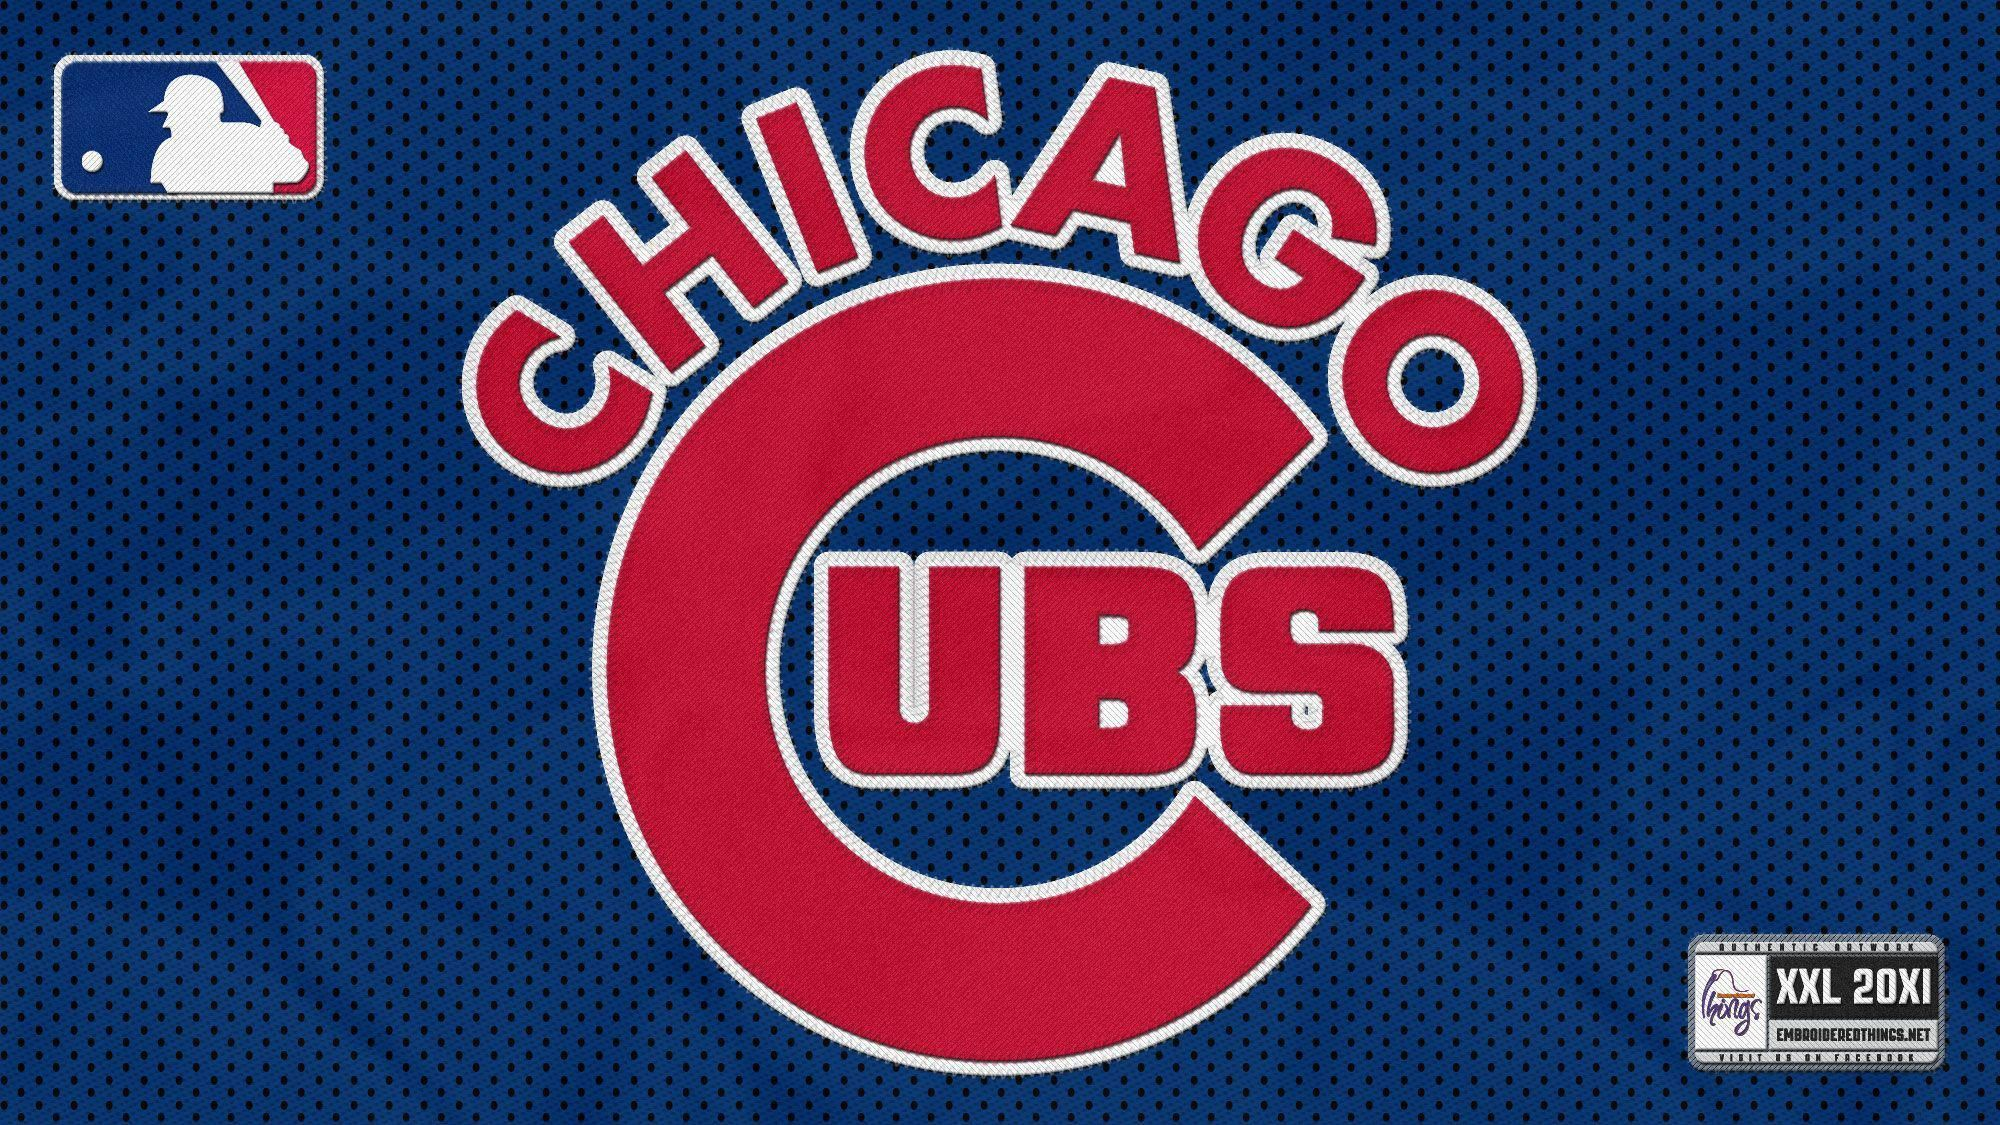 Chicago Cubs Full Screen Wallpaper Chicago Cubs Hd Images Chicago Cubs Wallpapers Chicagocu Chicago Cubs Wallpaper Chicago Cubs Logo Chicago Cubs Pictures